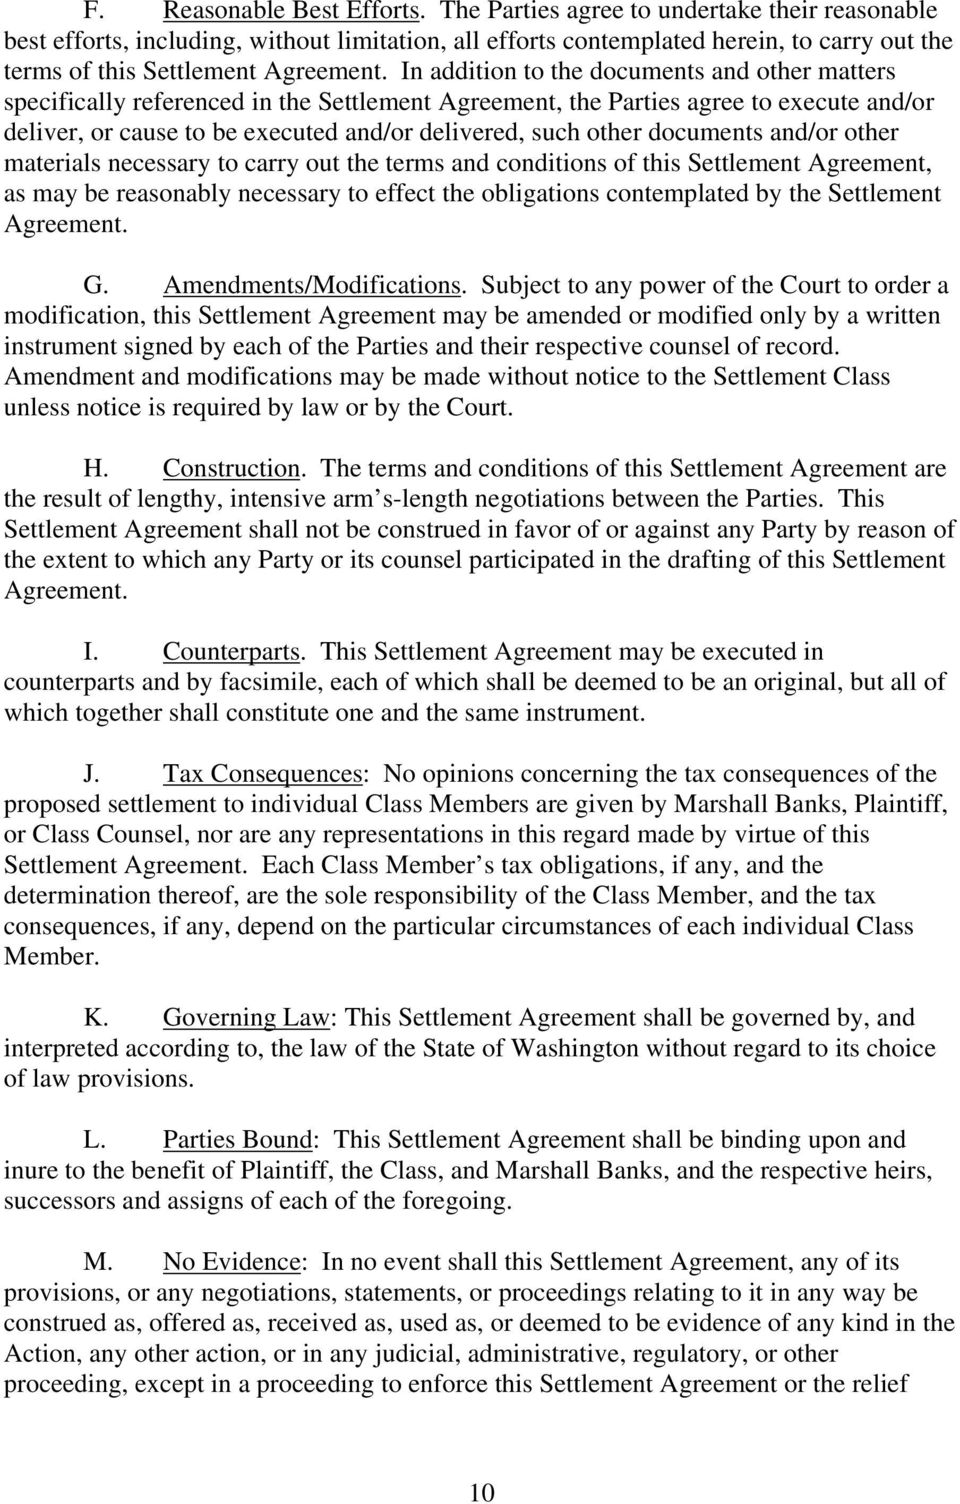 In addition to the documents and other matters specifically referenced in the Settlement Agreement, the Parties agree to execute and/or deliver, or cause to be executed and/or delivered, such other